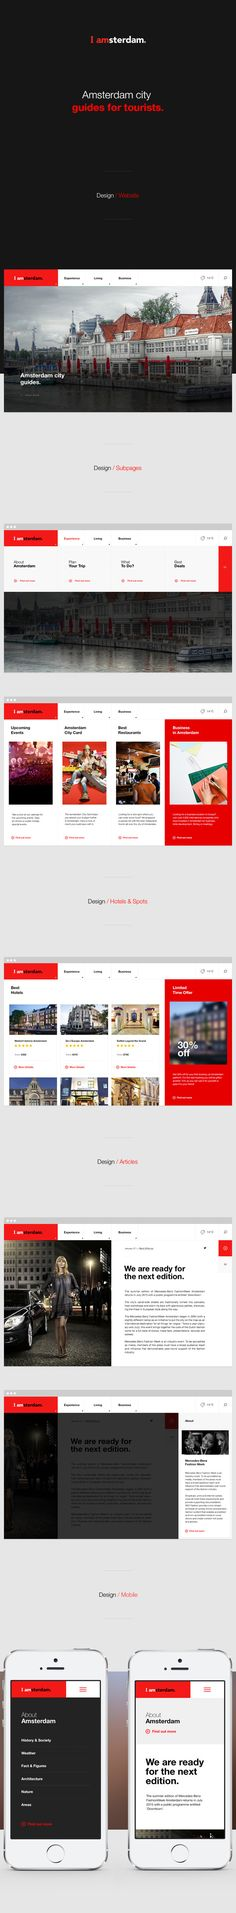 I was tasked to prepare the pitch for the portal about everything you need to visit, enjoy, live, work, invest and do business in the Amsterdam Metropolitan Area.